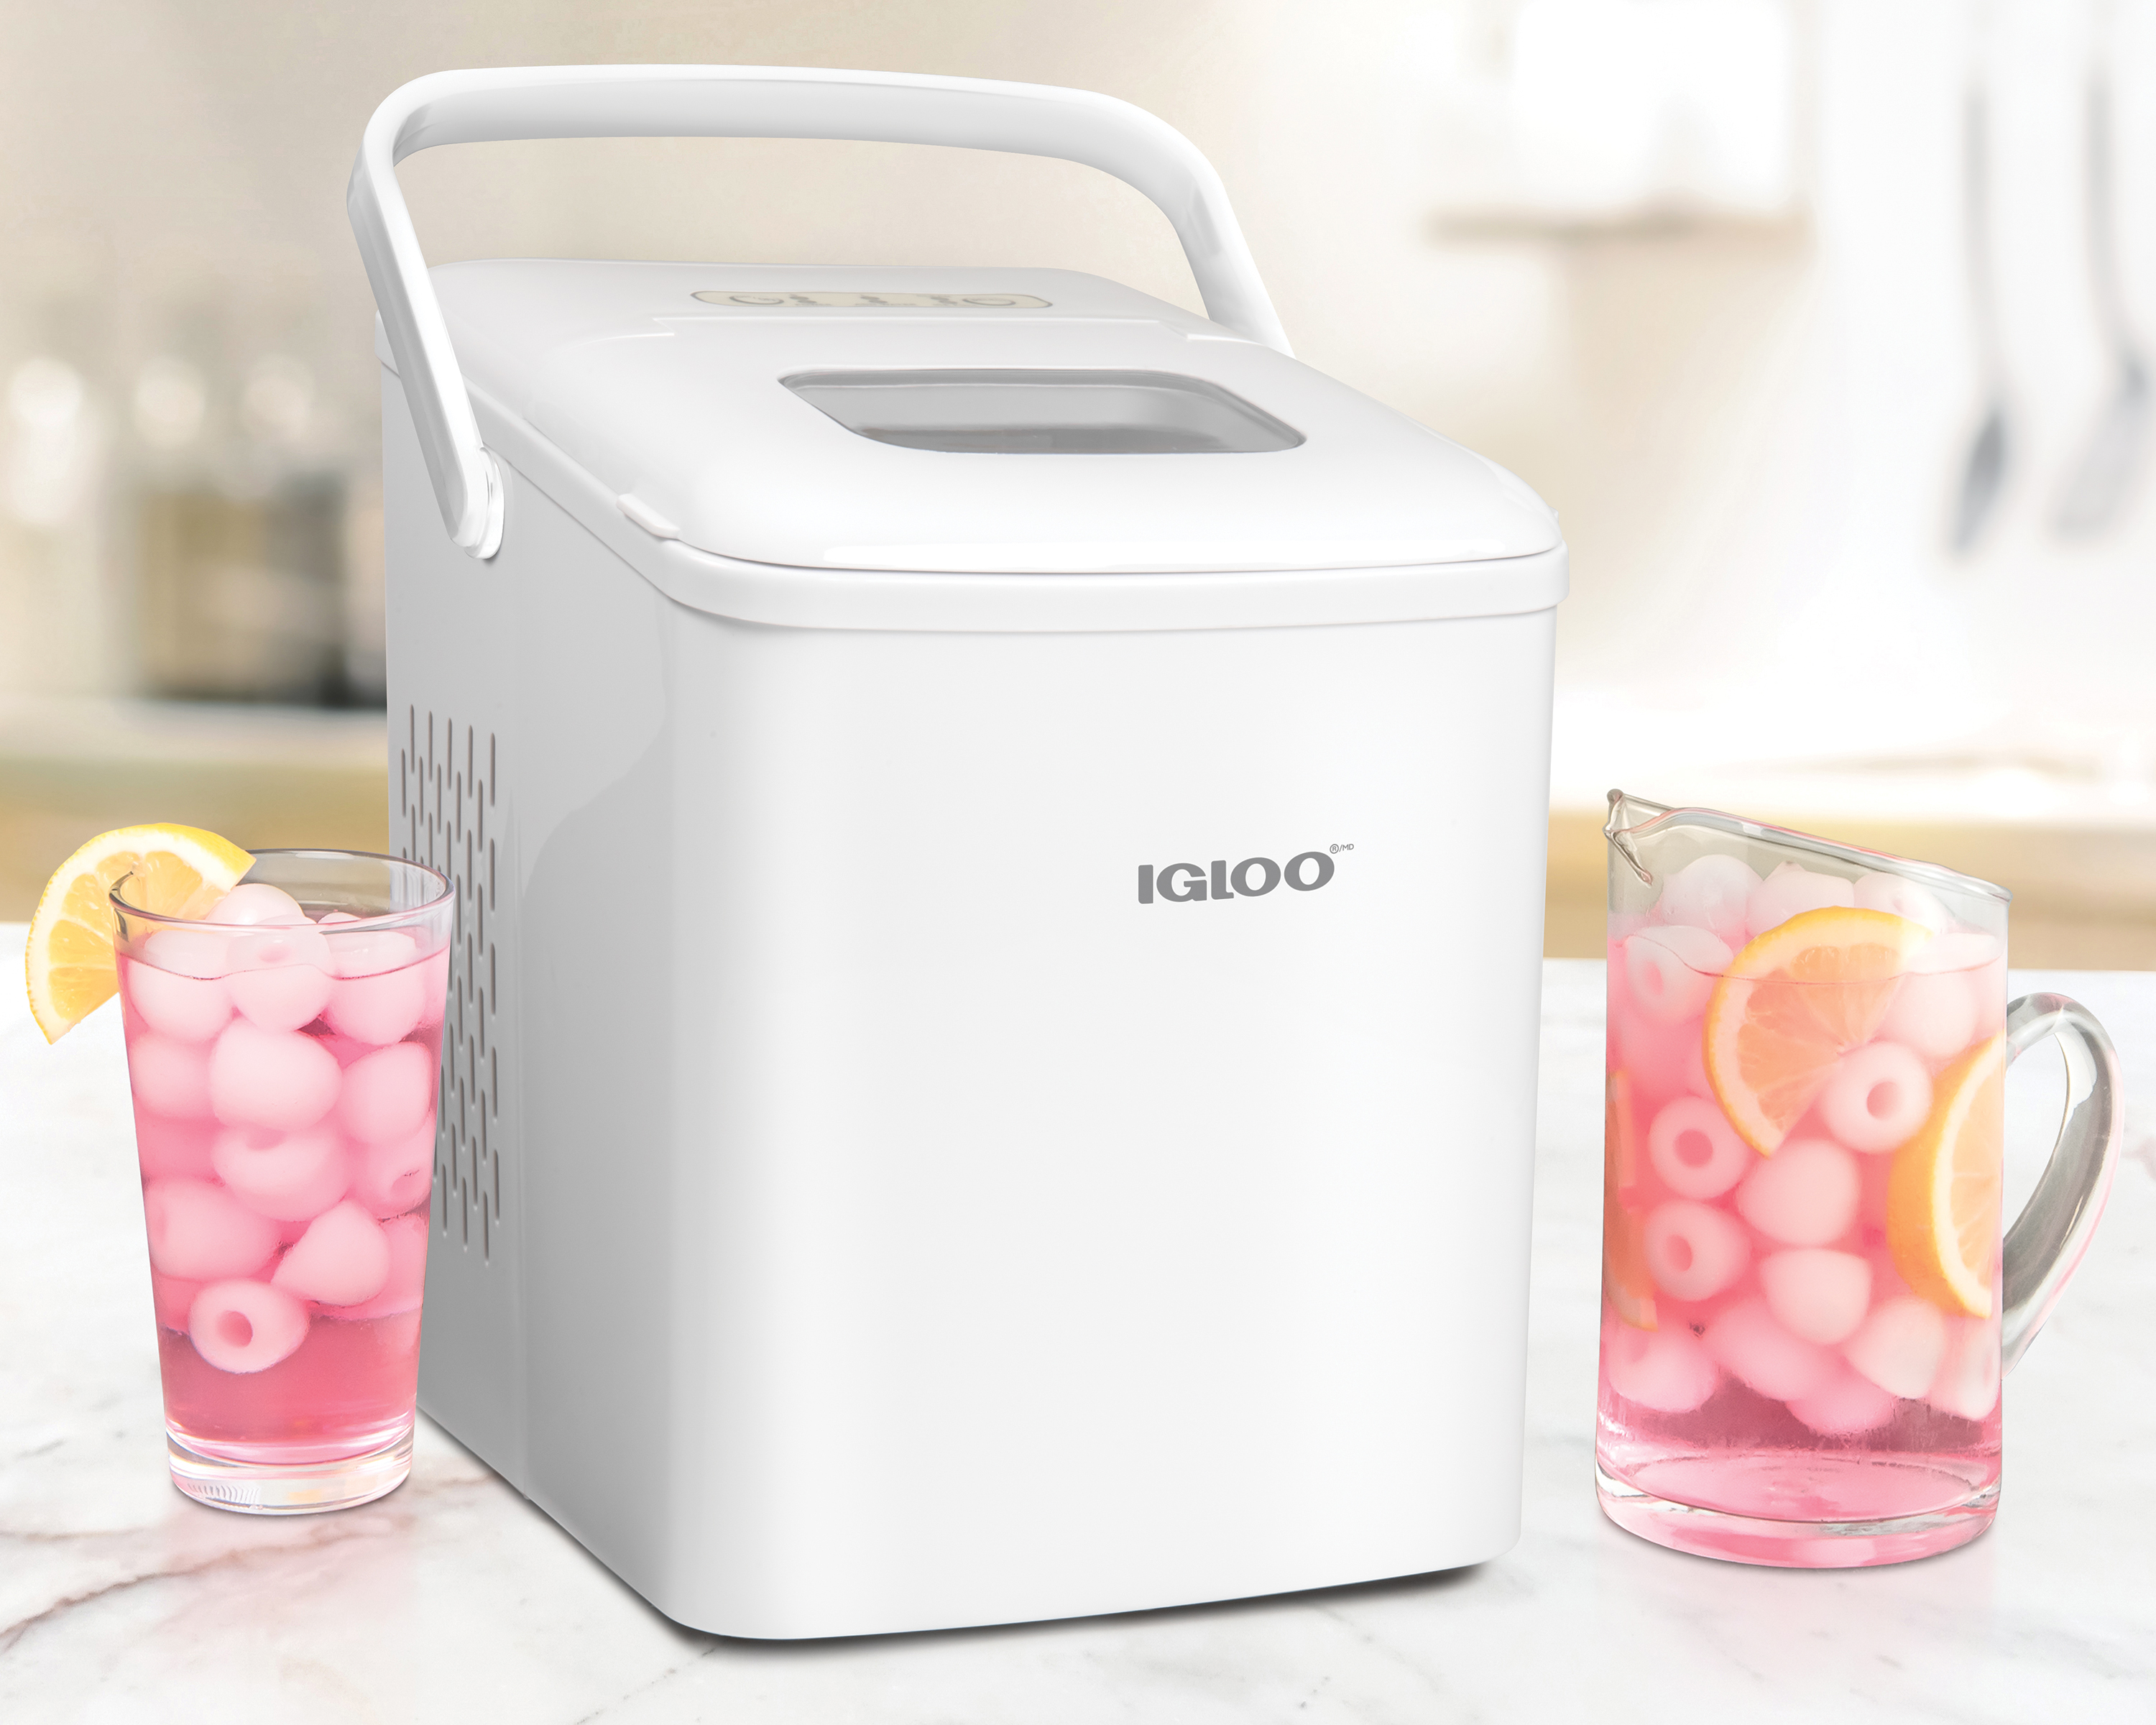 Igloo Iceb26hnwh 26 Pound Automatic Self Cleaning Portable Countertop Ice Maker Machine With Handle White Walmart Com Walmart Com